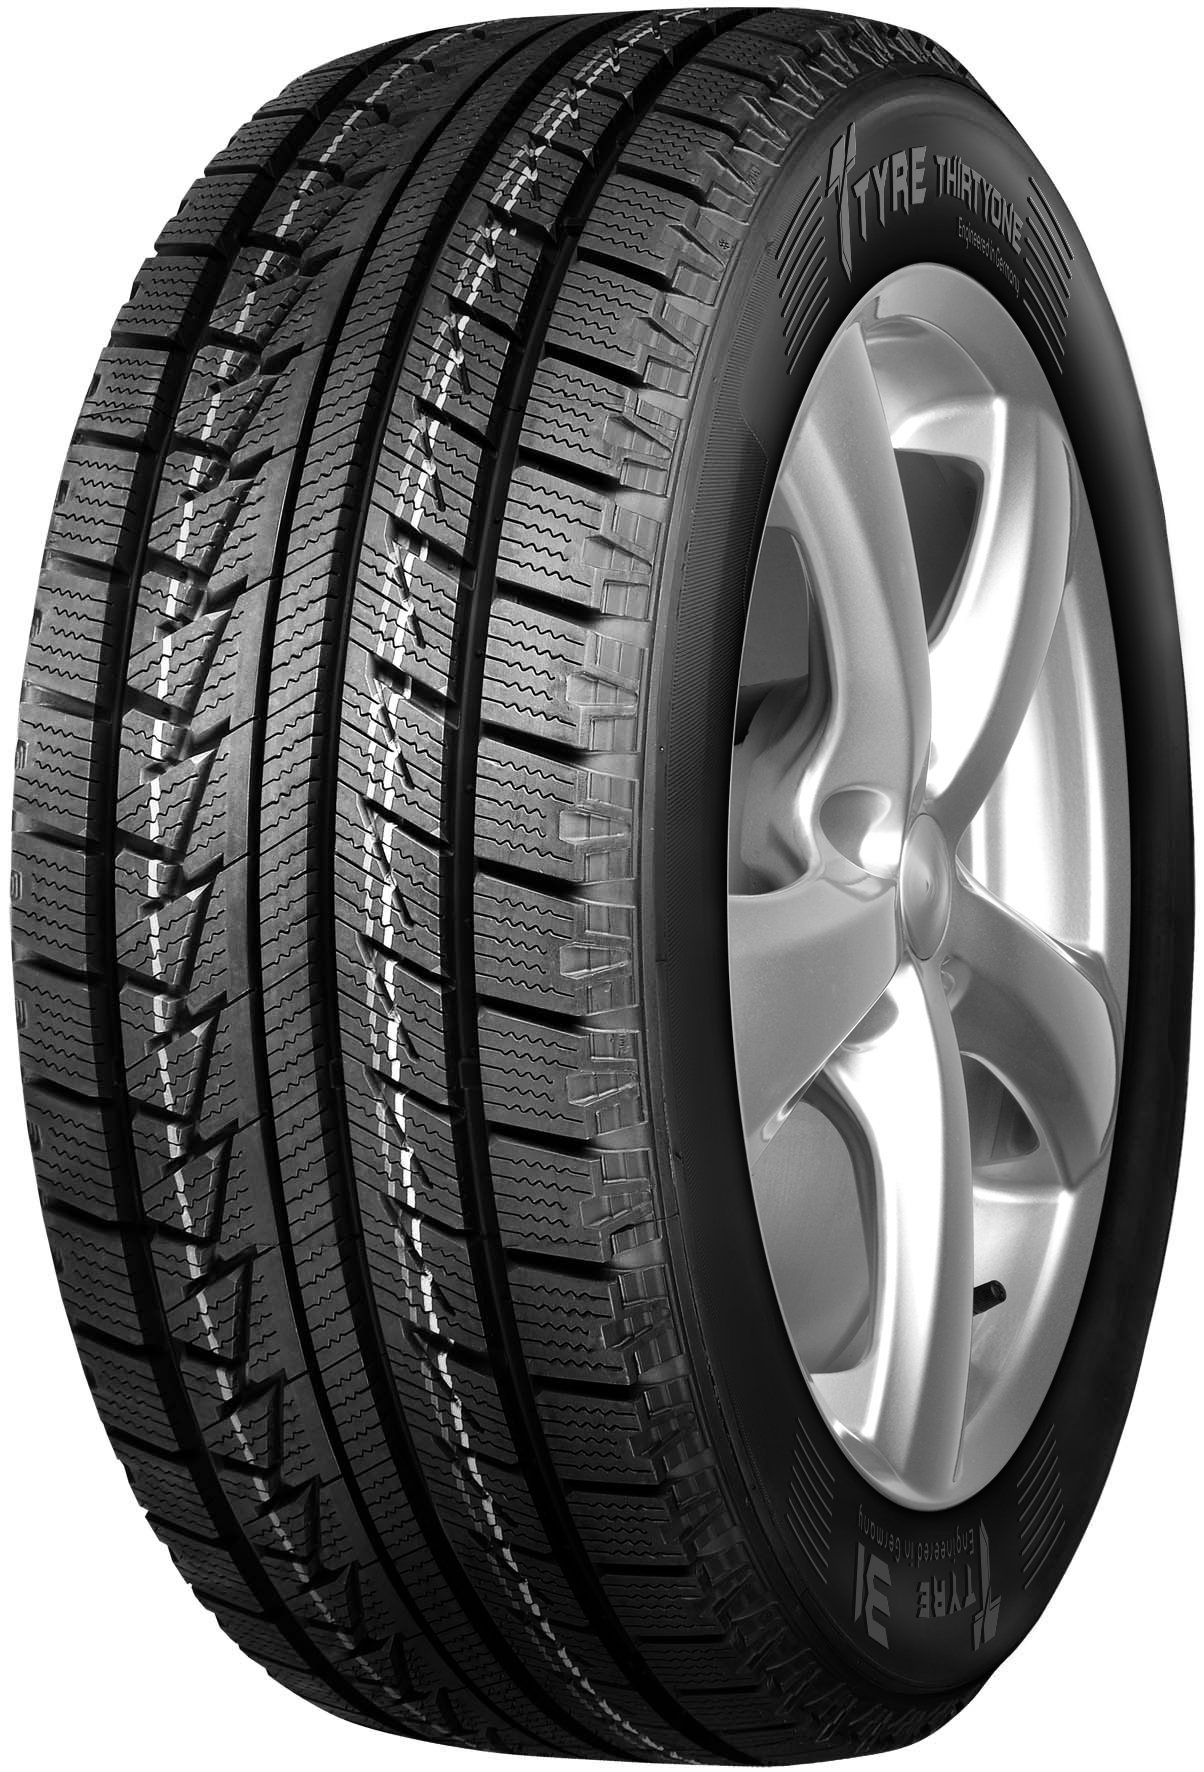 Gomme Autovettura T-Tyre 225/45 R17 94H THIRTY ONE XL M+S Invernale